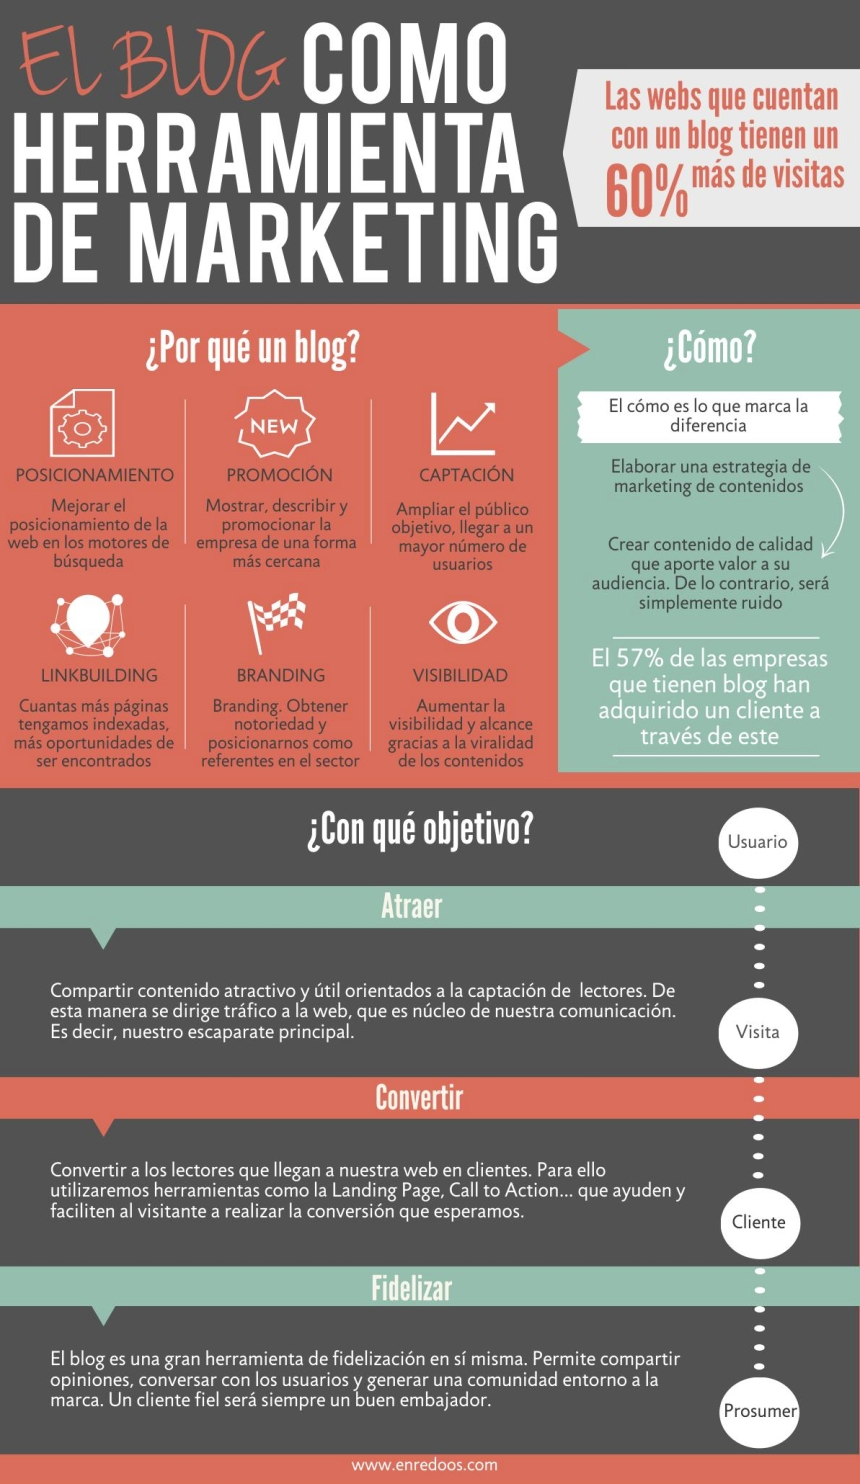 El Blog como herramienta de marketing